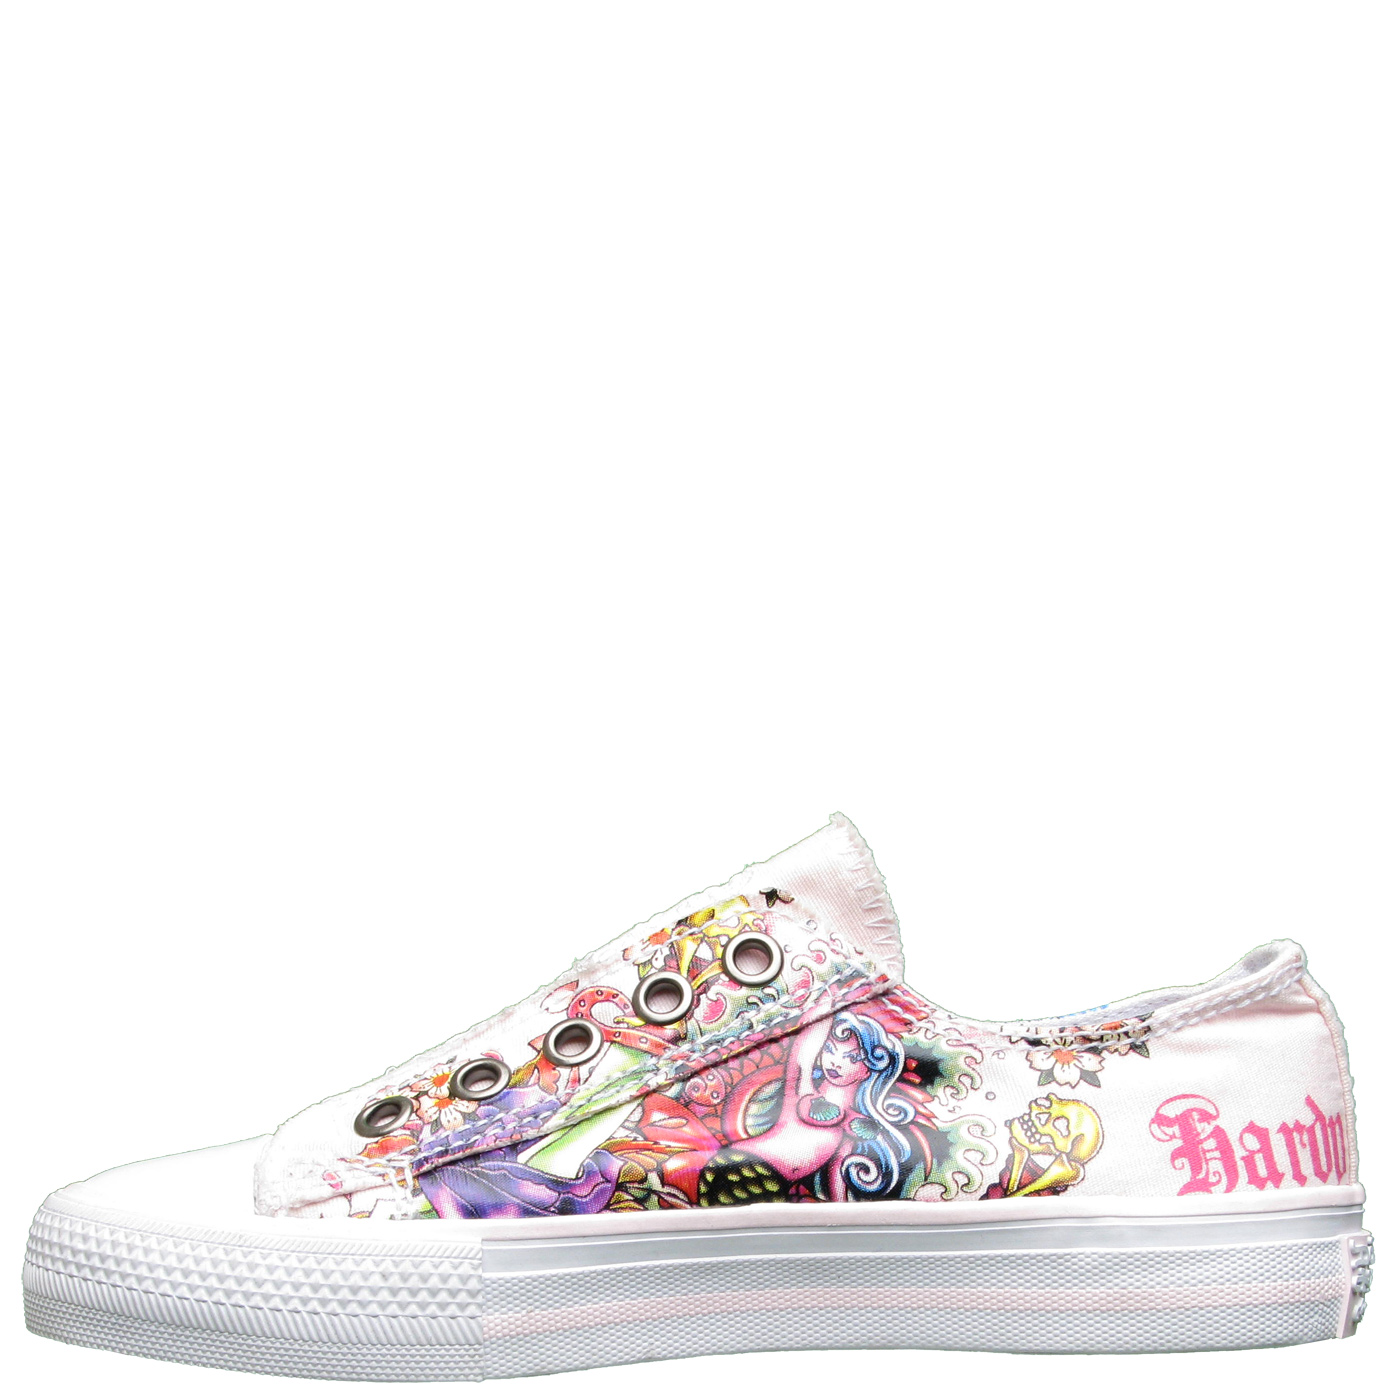 Ed Hardy Lowrise 100 Shoe for Women - Pink